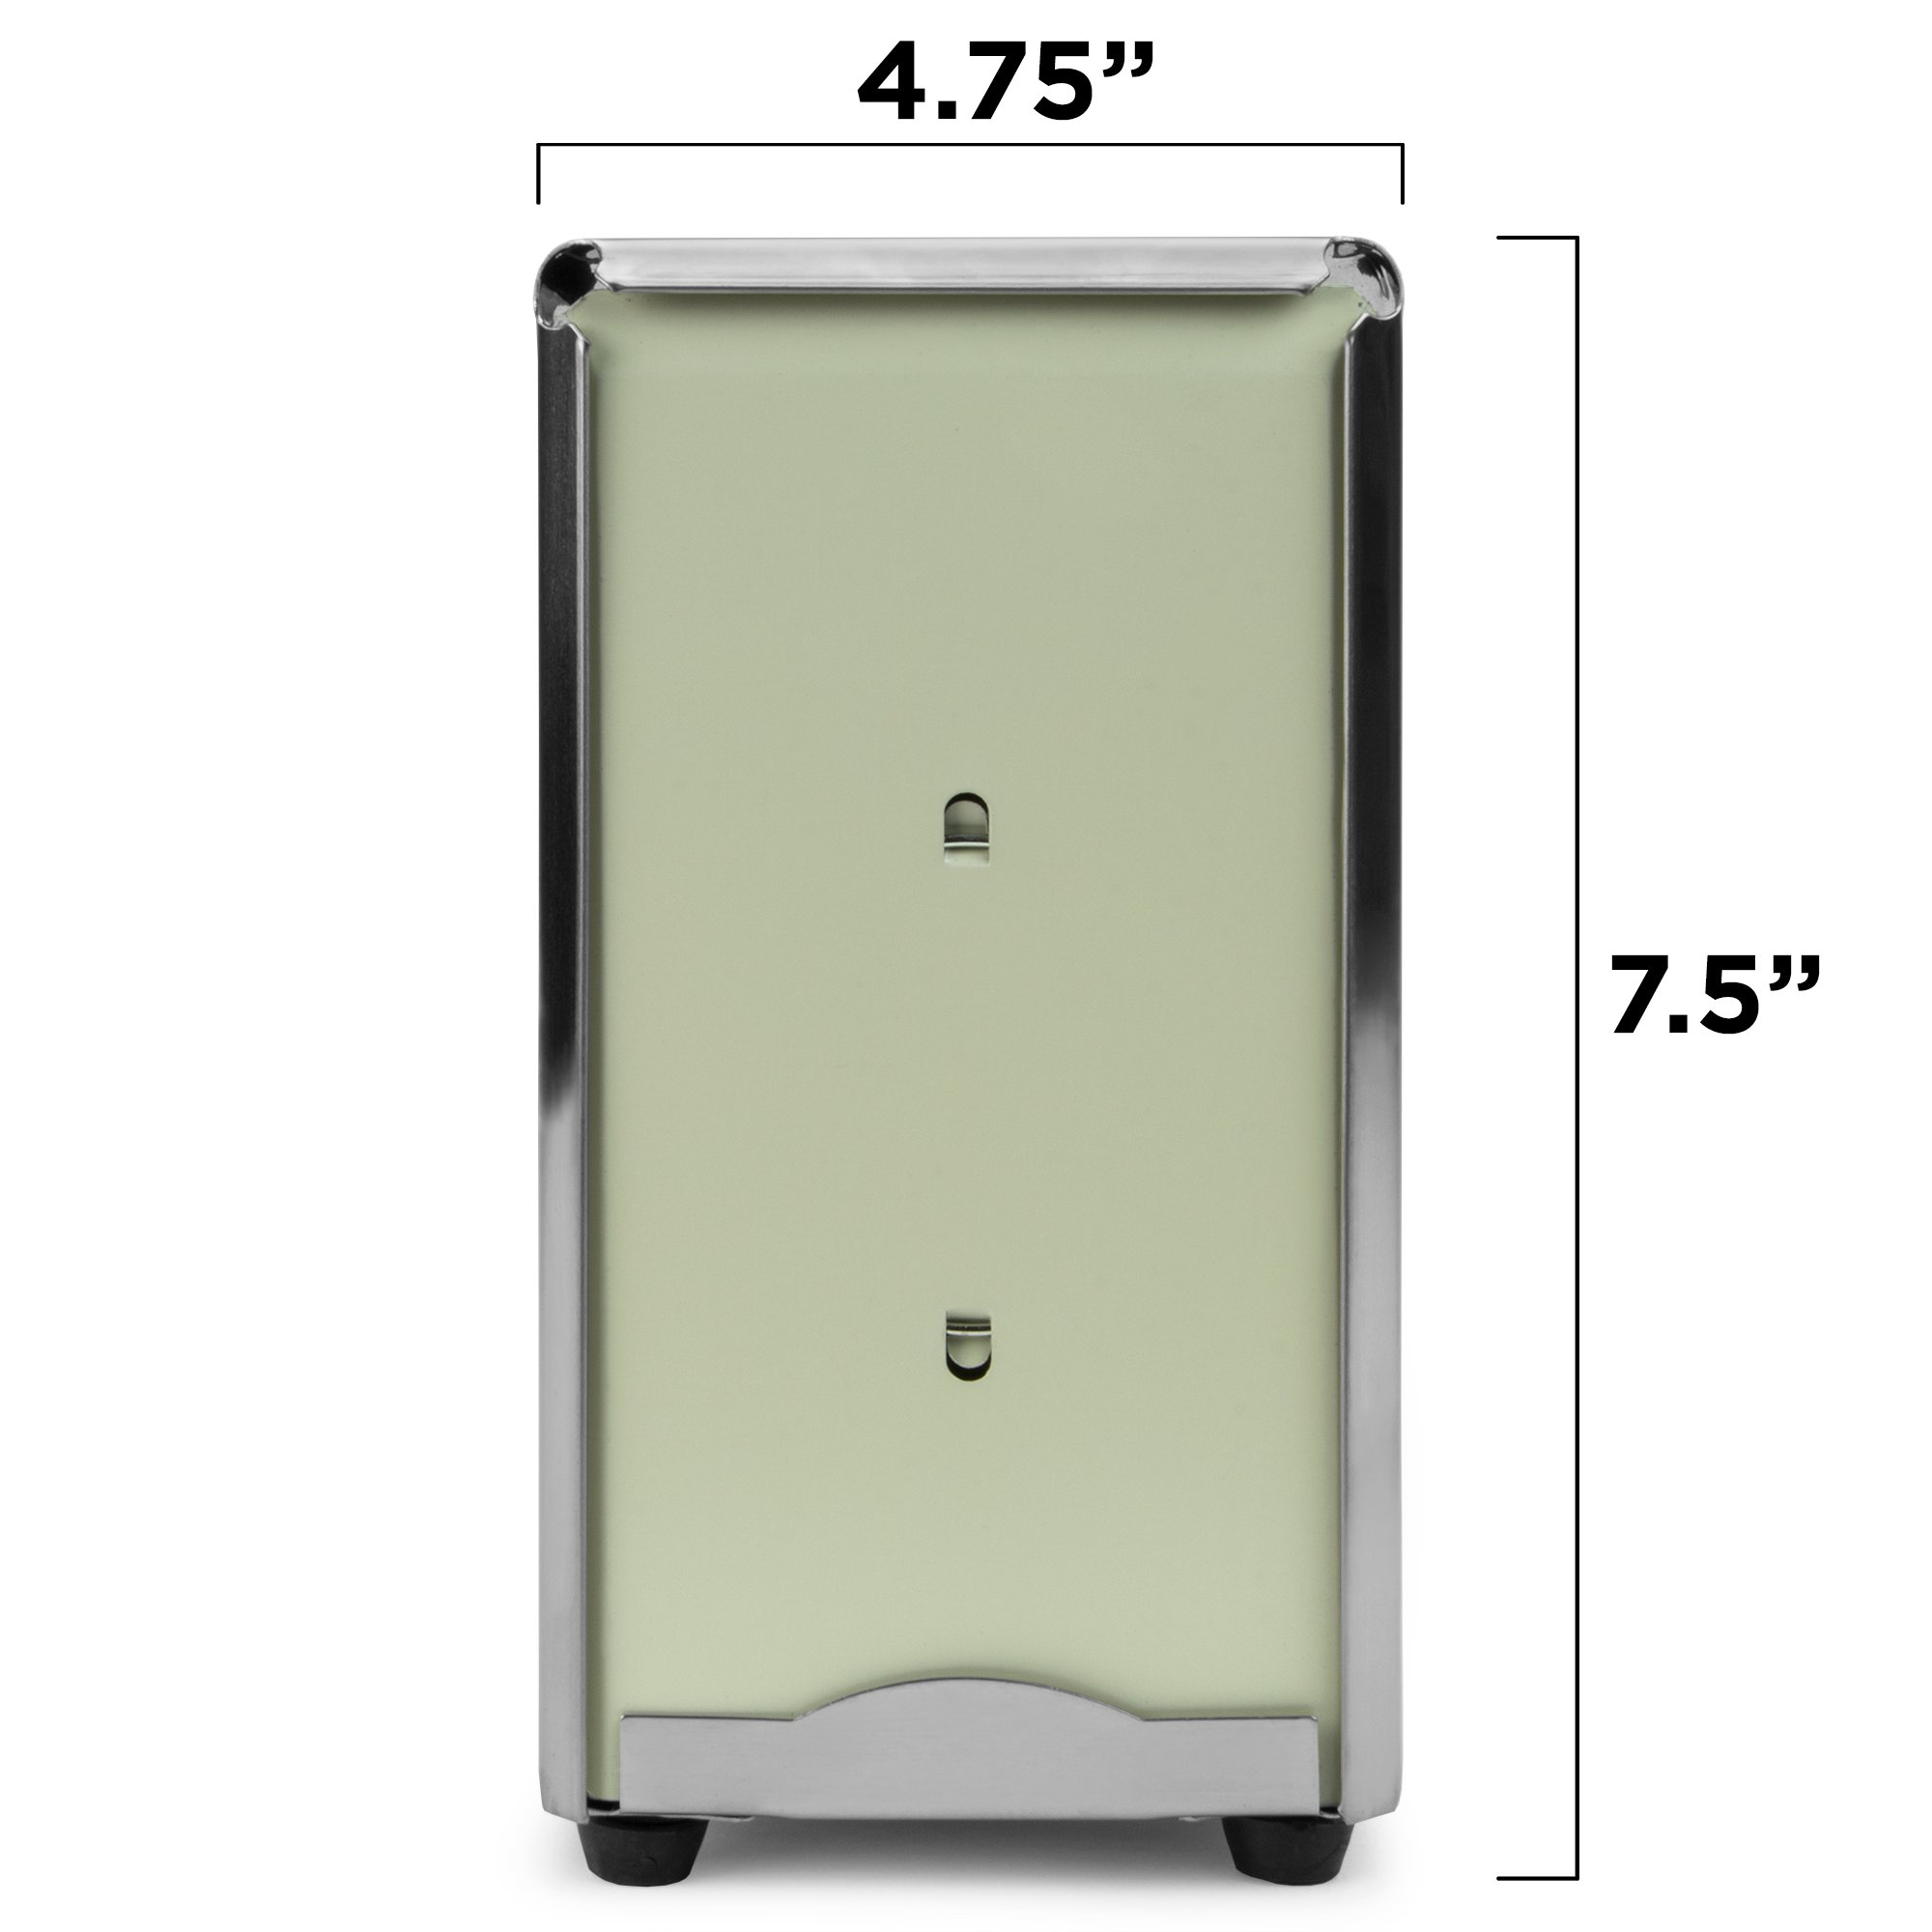 Back of House Ltd. Commercial Spring-Load Stainless Steel Tall-Fold Napkin Dispenser for Restaurants, Diners, & Home Use by Back of House Ltd. (Image #5)